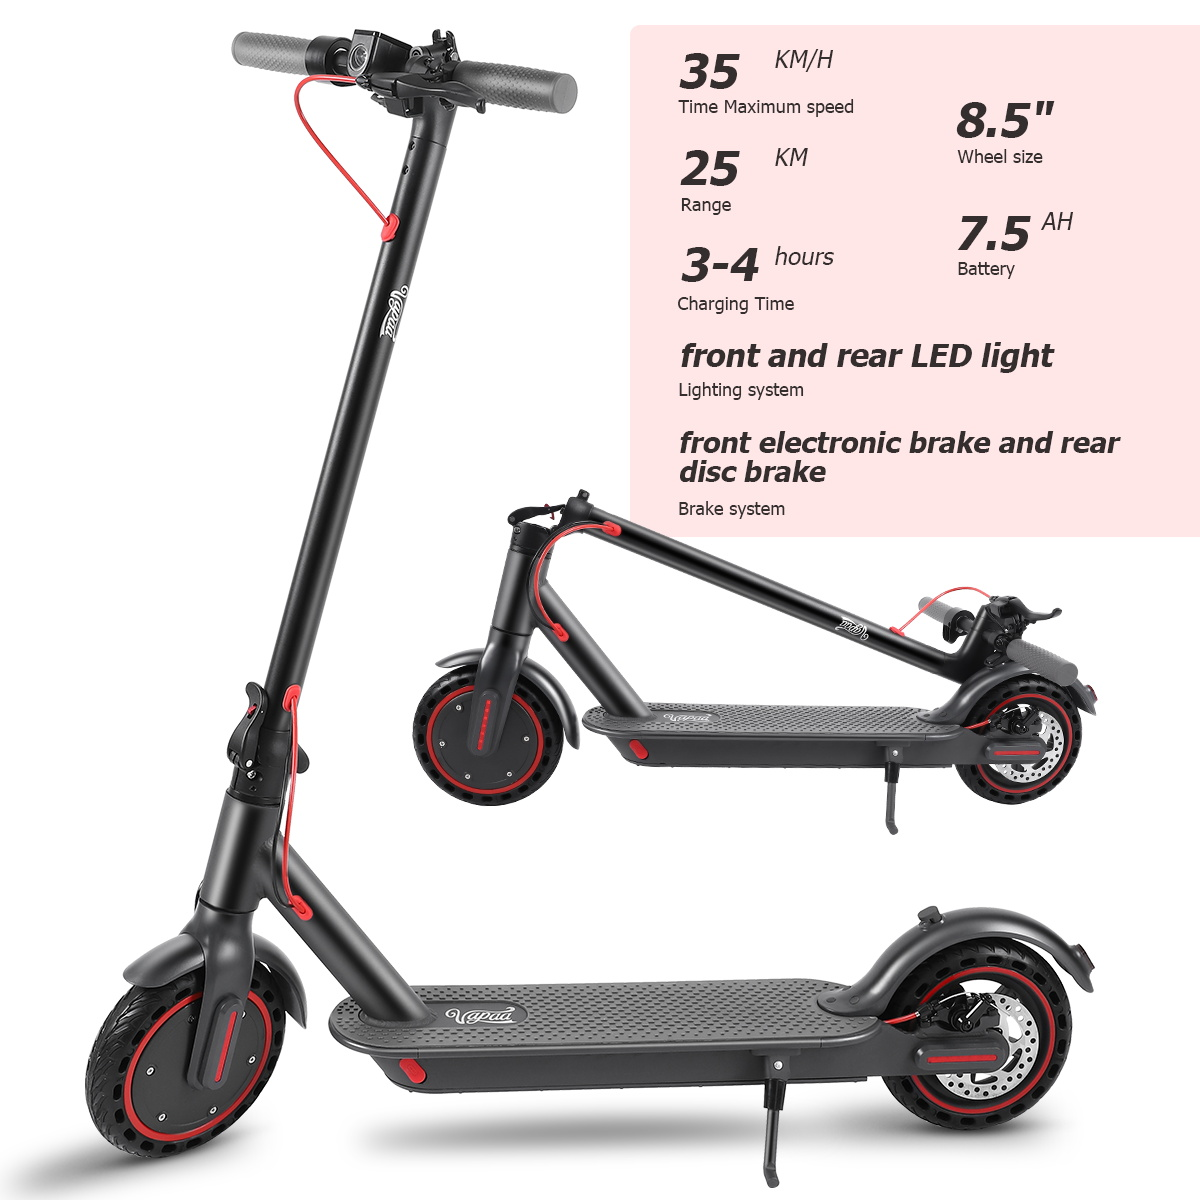 Foldable Electric scooter, a means of transportation during holidays